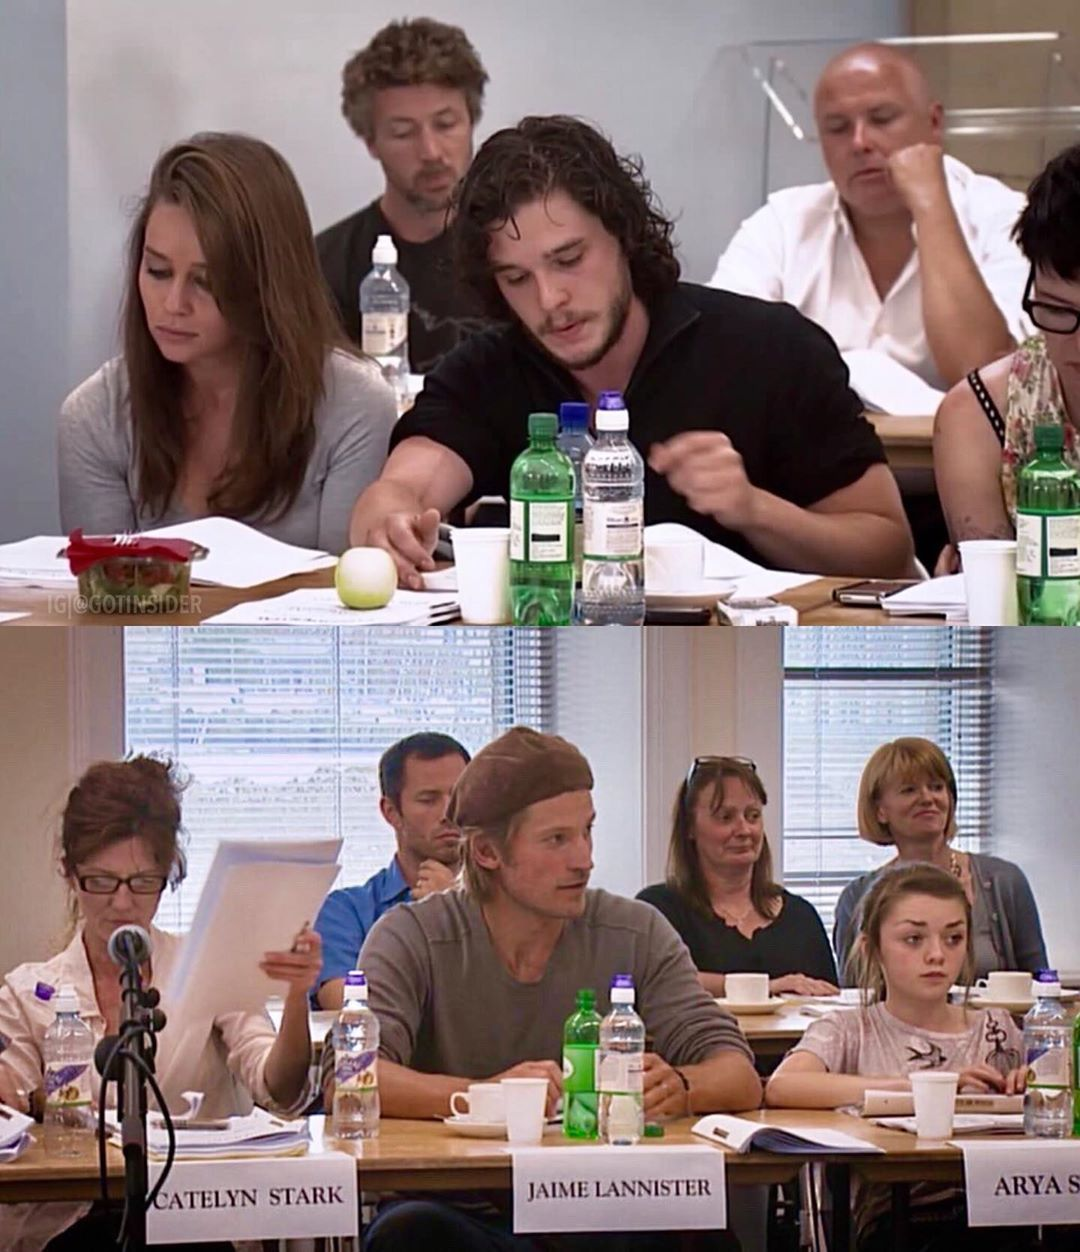 The Cast At The Very First Table Read In 2010 For Game Of Thrones Season 1 Via The Last Watch Game Of Thrones Cast Game Of Thrones Sansa Hbo Game Of Thrones